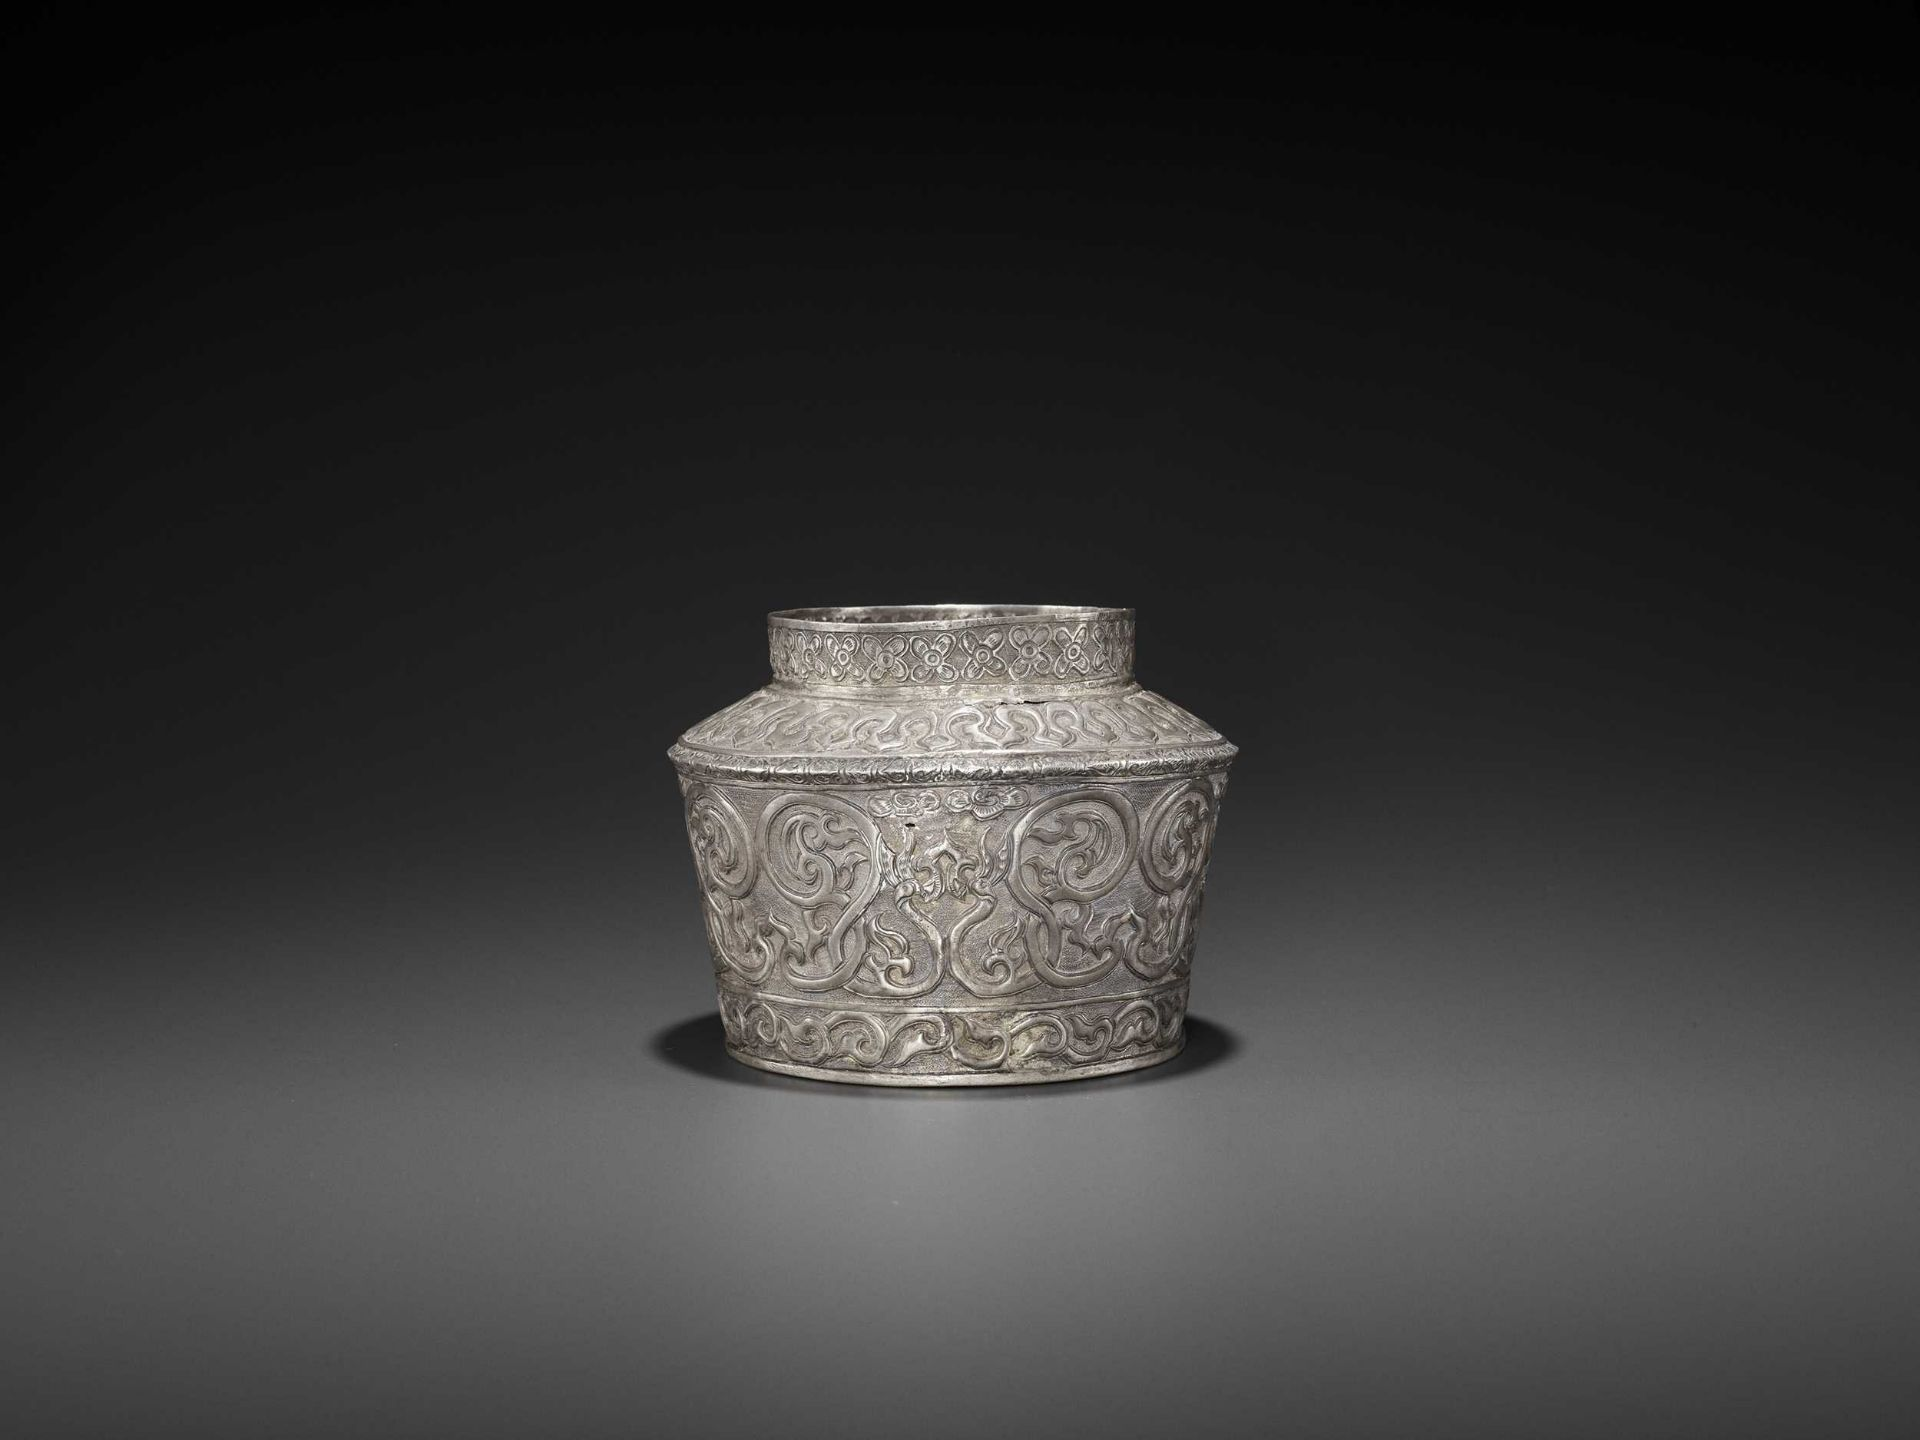 AN EXTREMELY RARE AND FINE CHAM SILVER REPOUSSÉ BOWL WITH PHOENIXES - Bild 5 aus 7